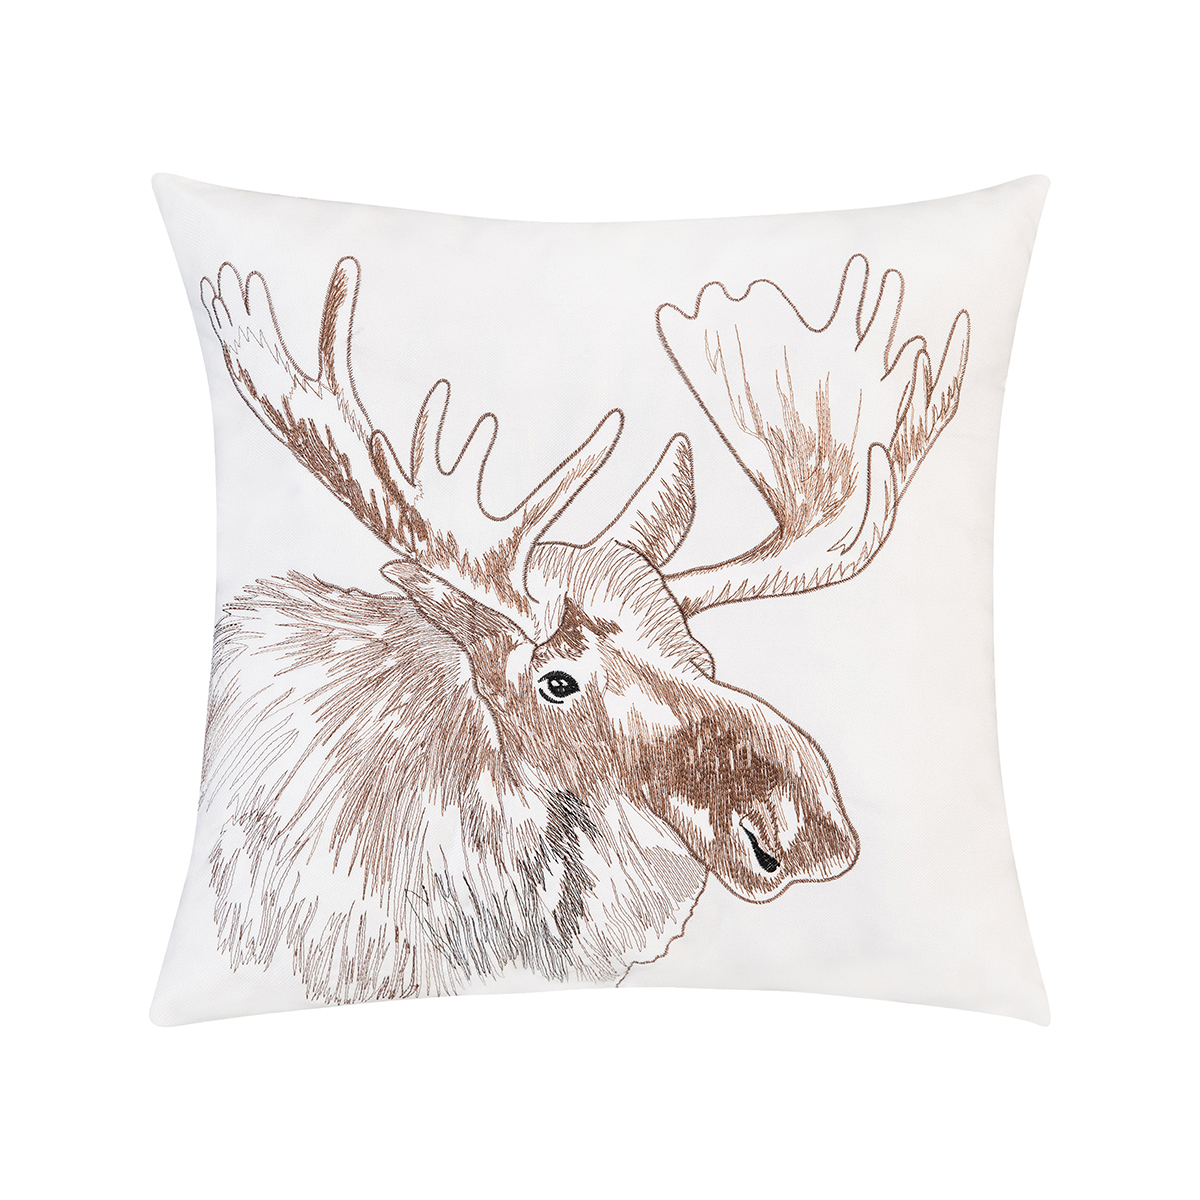 Moose Portrait Indoor Outdoor Embroidered Pillow Walmart Com Walmart Com